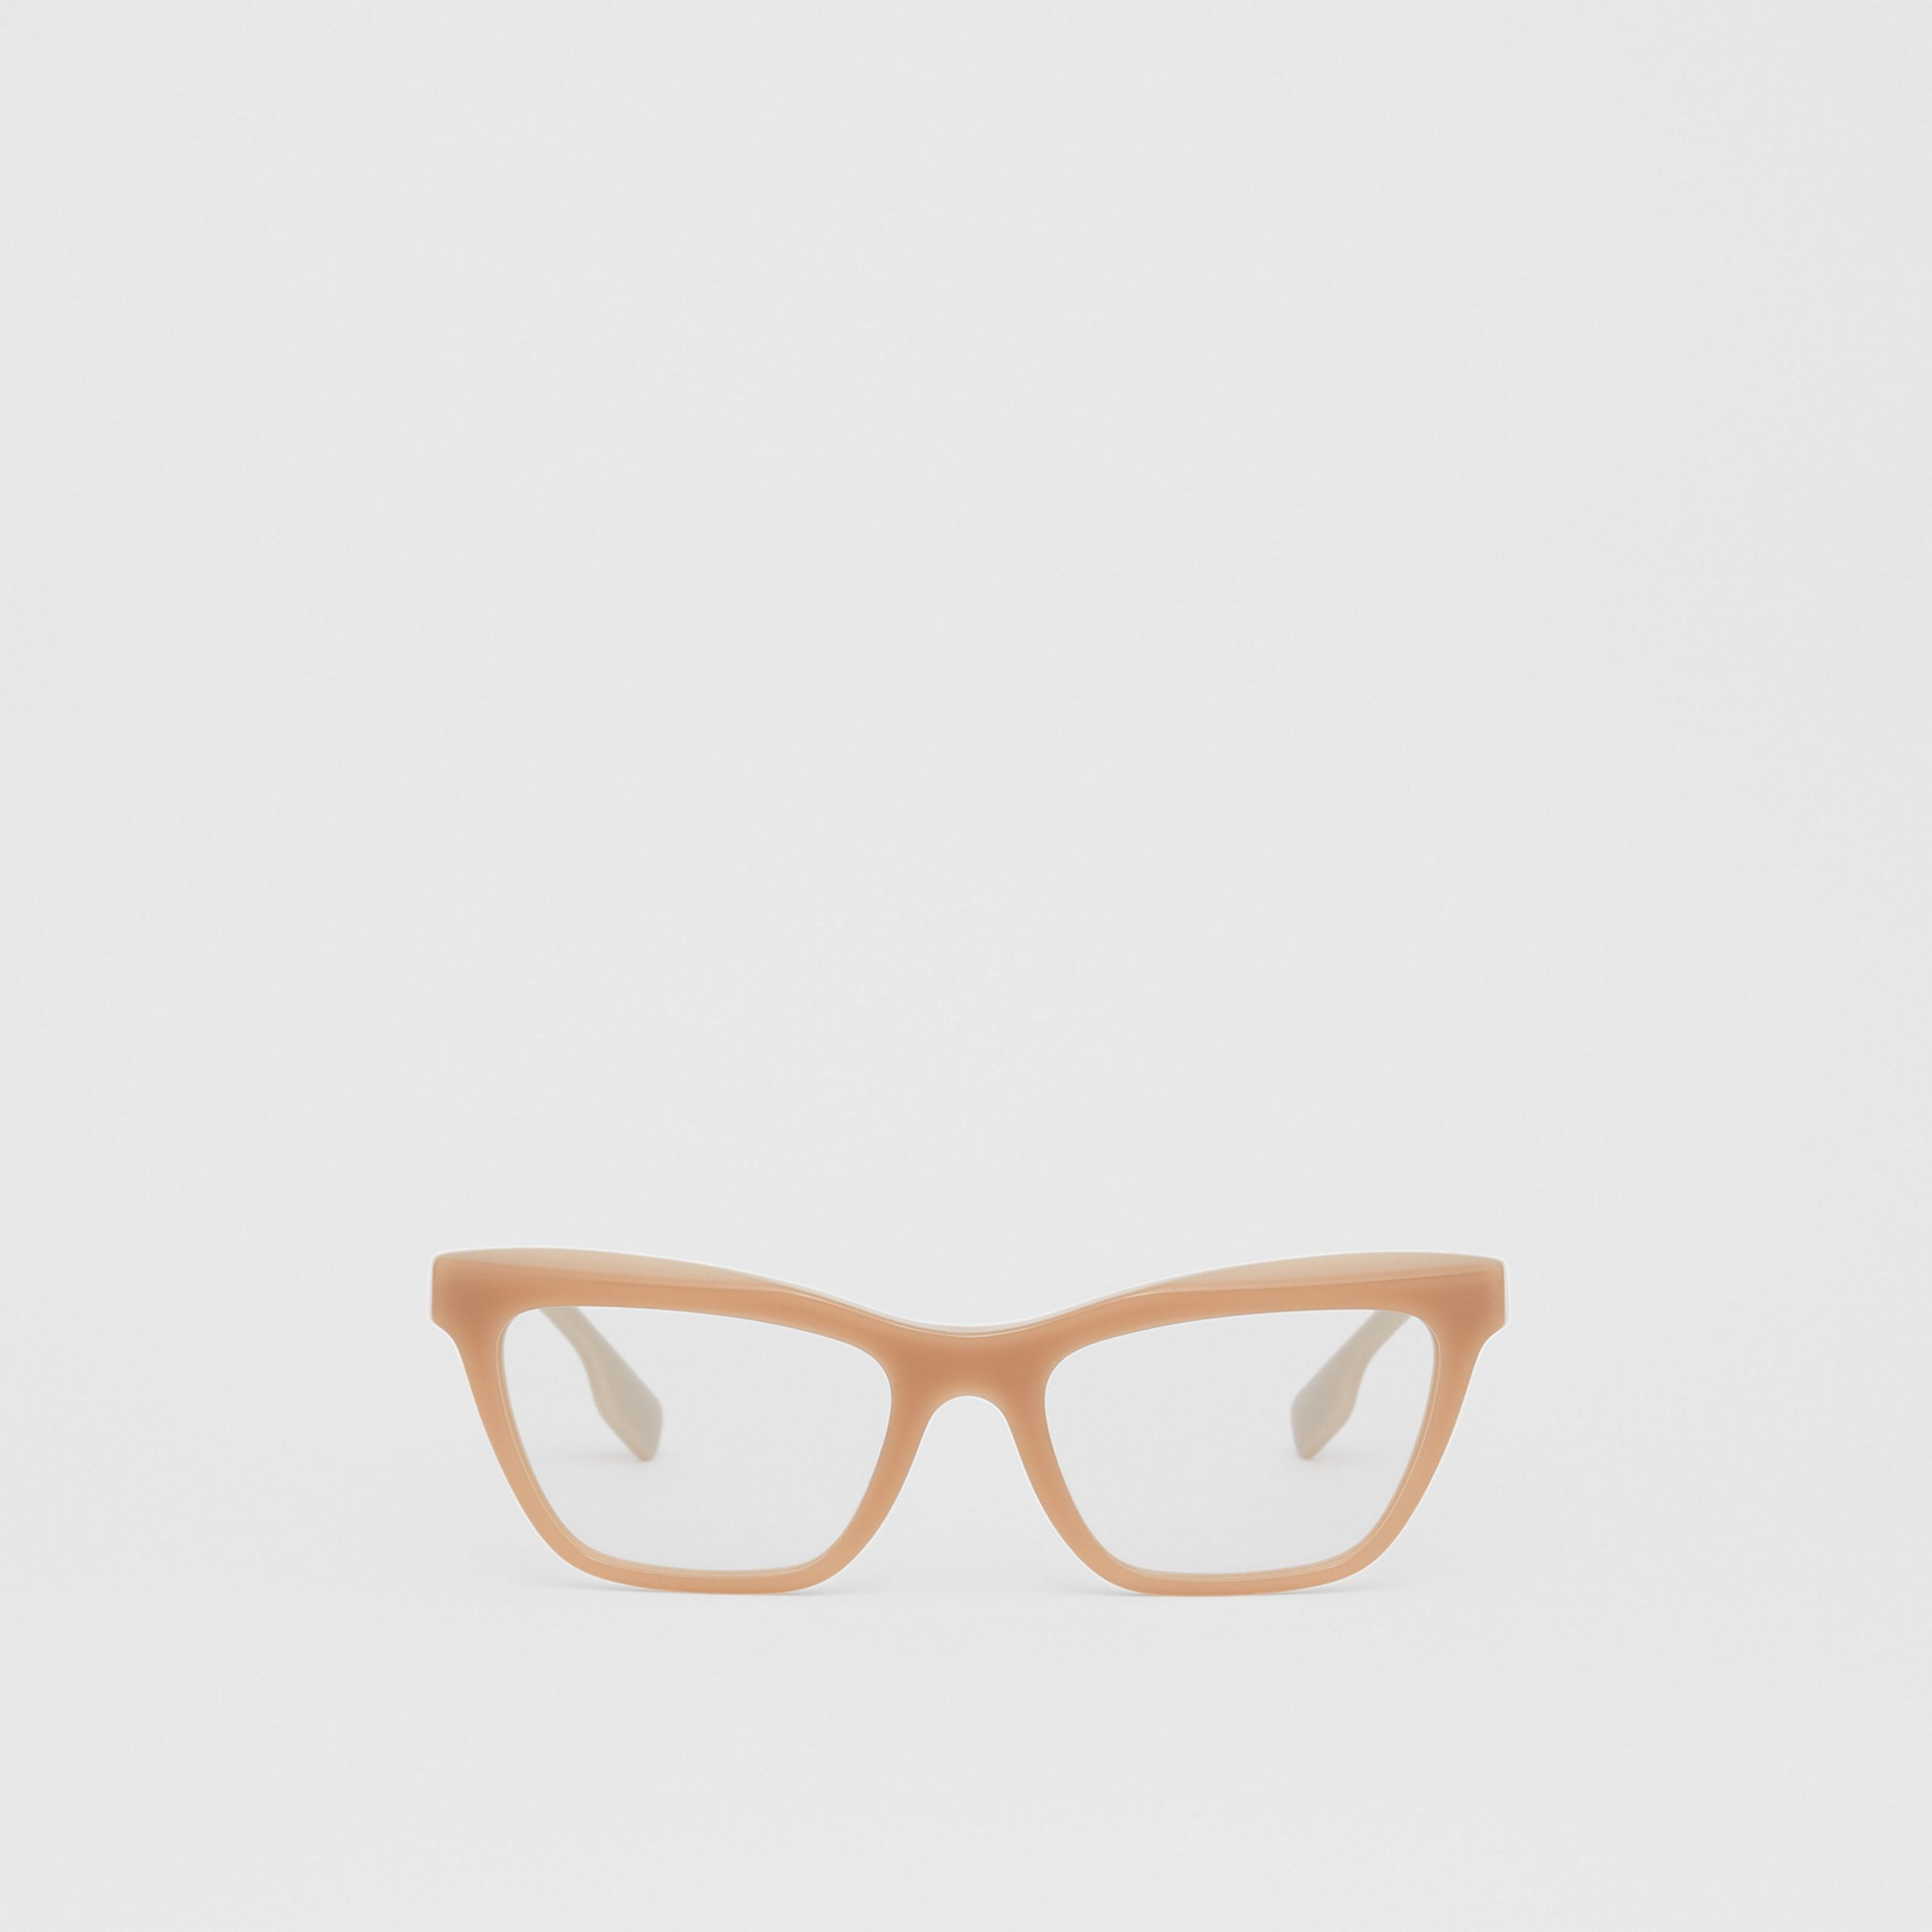 Rectangular Optical Frames in Peach - Women | Burberry - 1